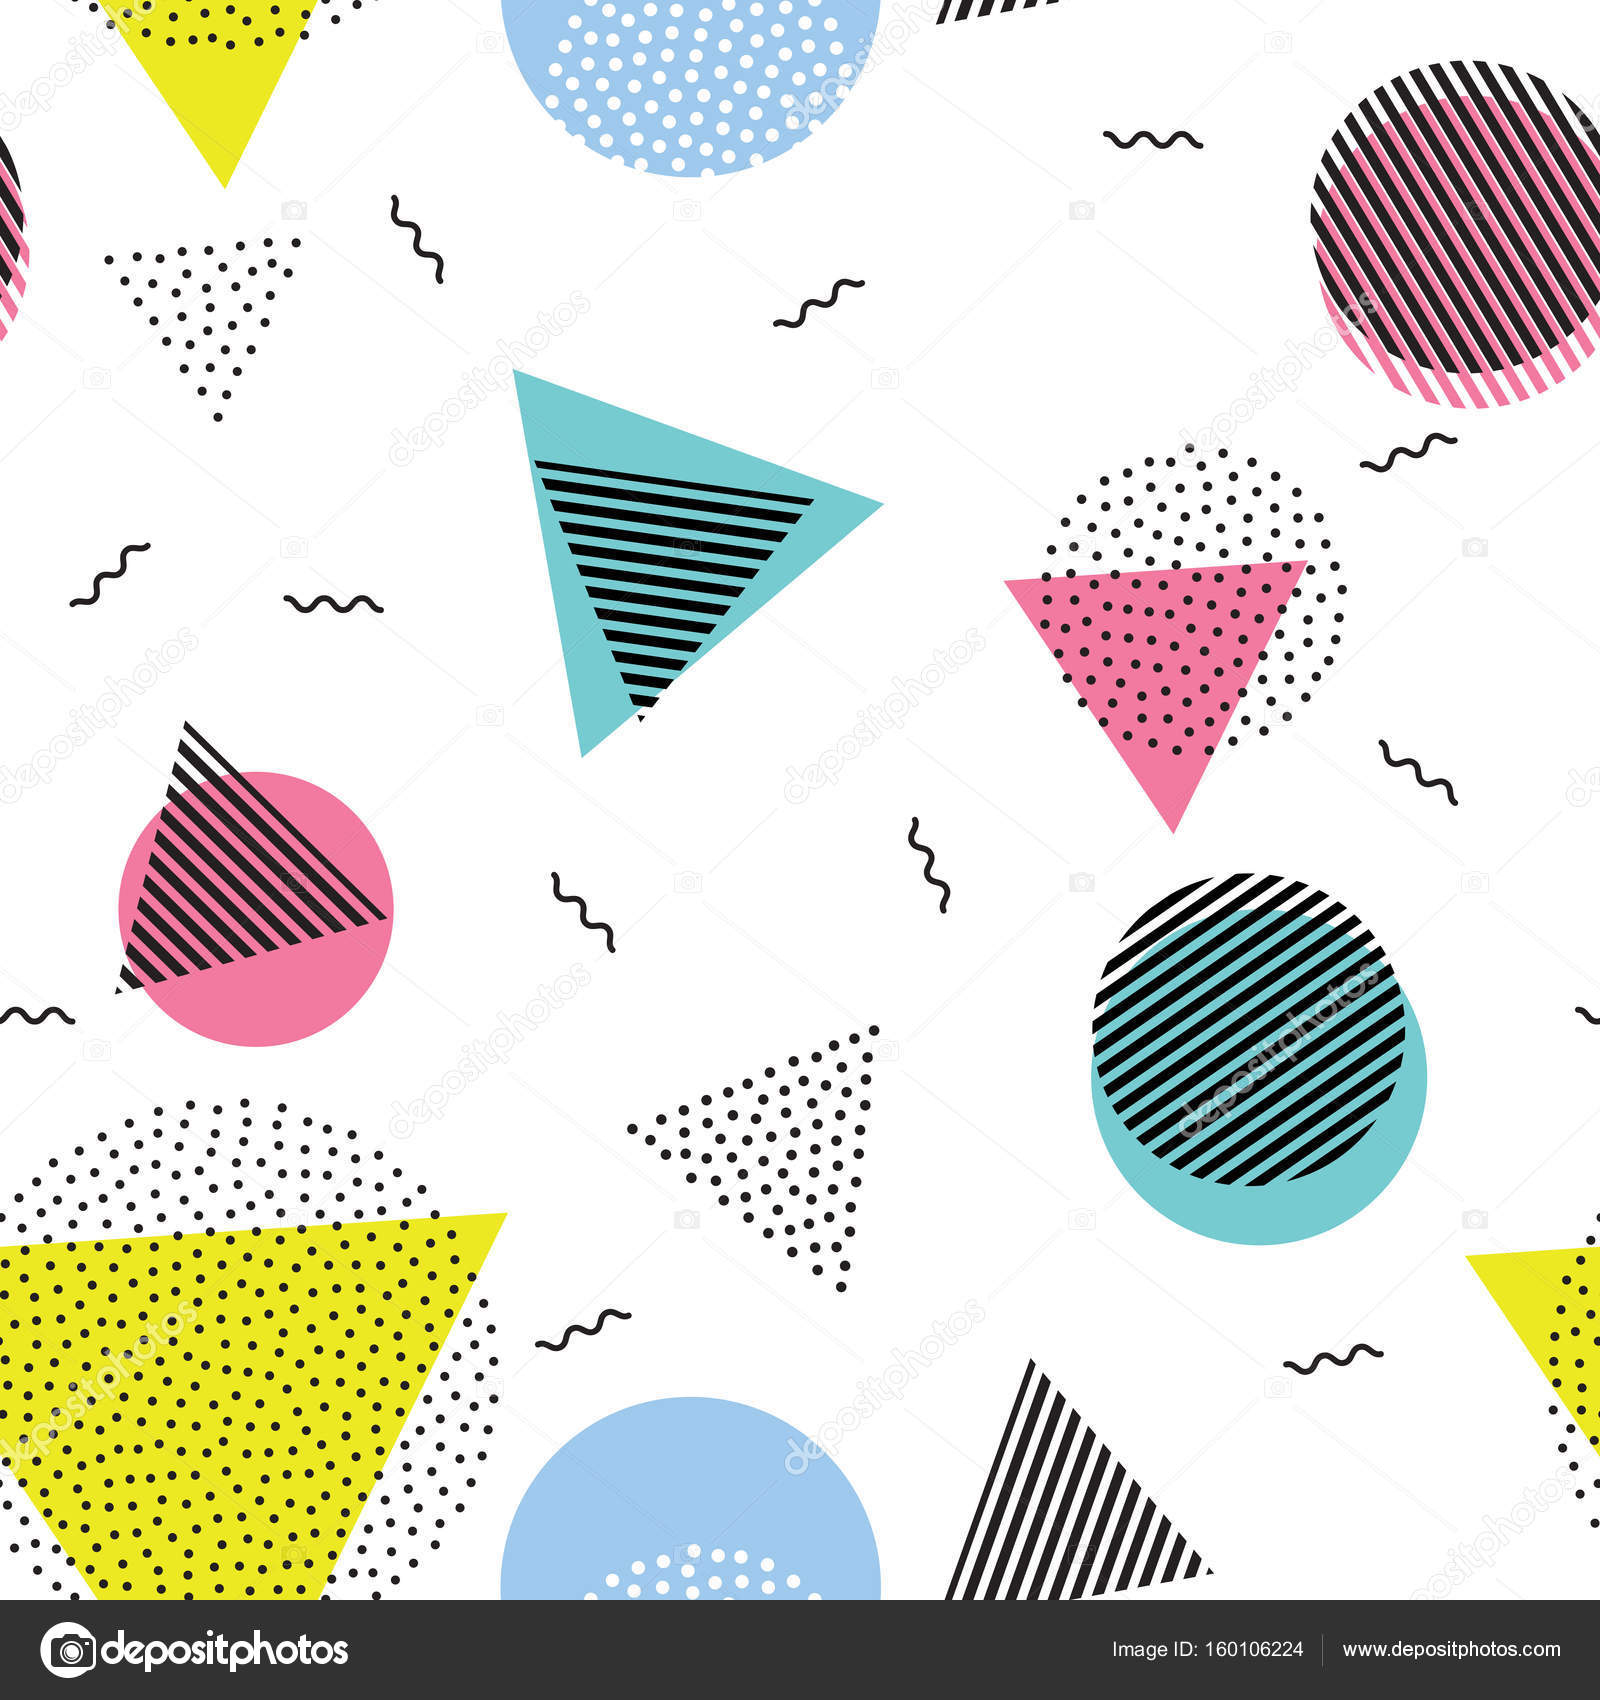 Triangle circle abstract geometric vector seamless pattern